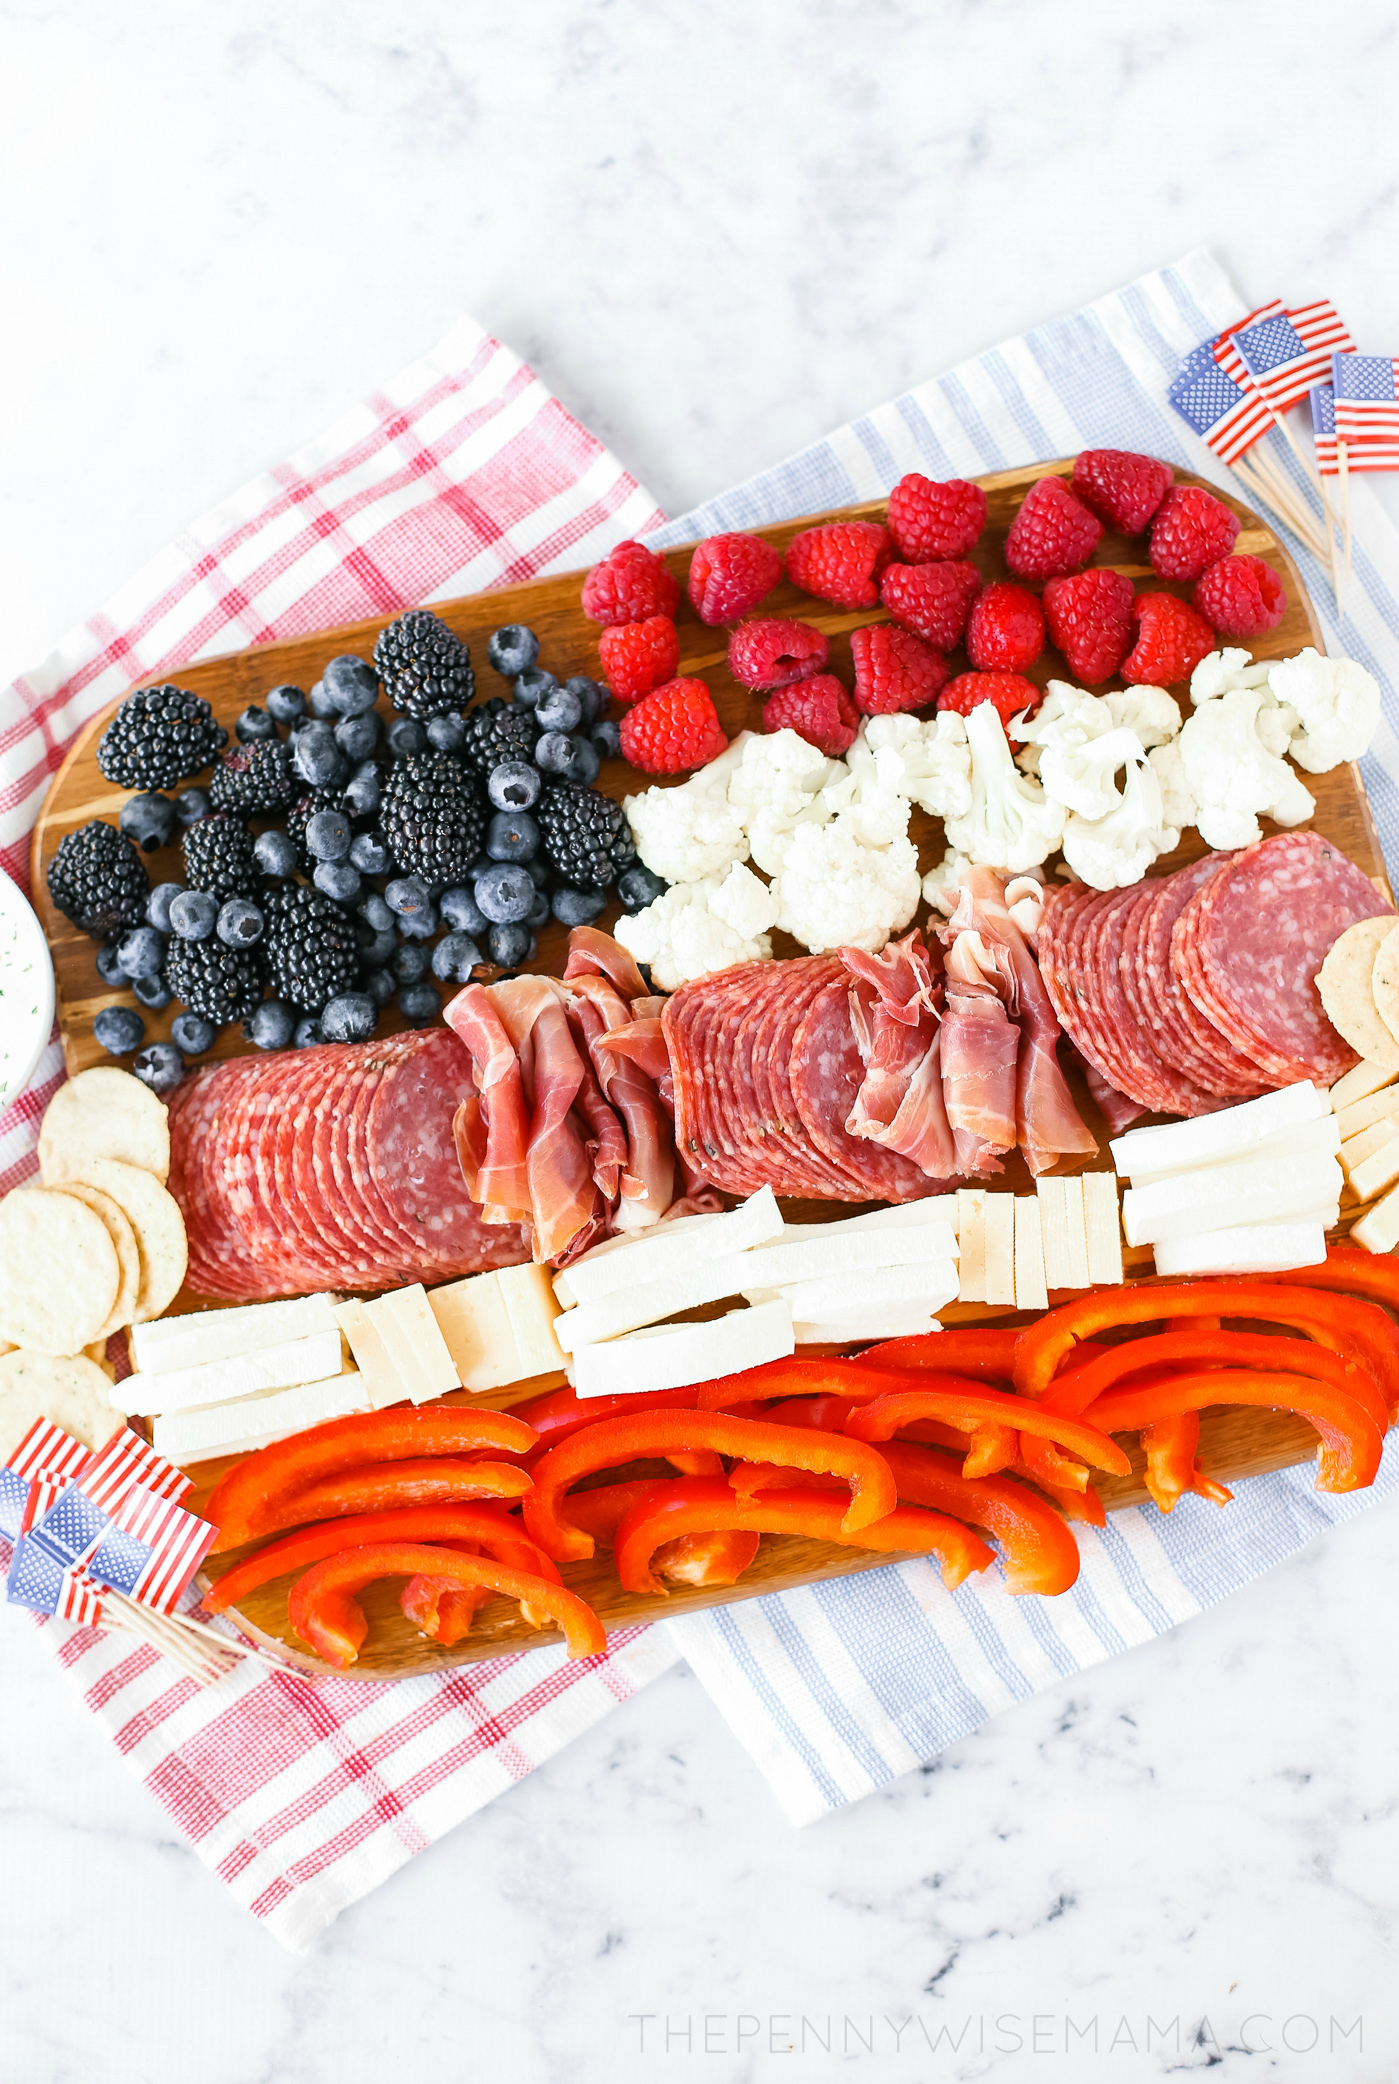 Patriotic Charcuterie Board - An American Flag Meat and Cheese Board